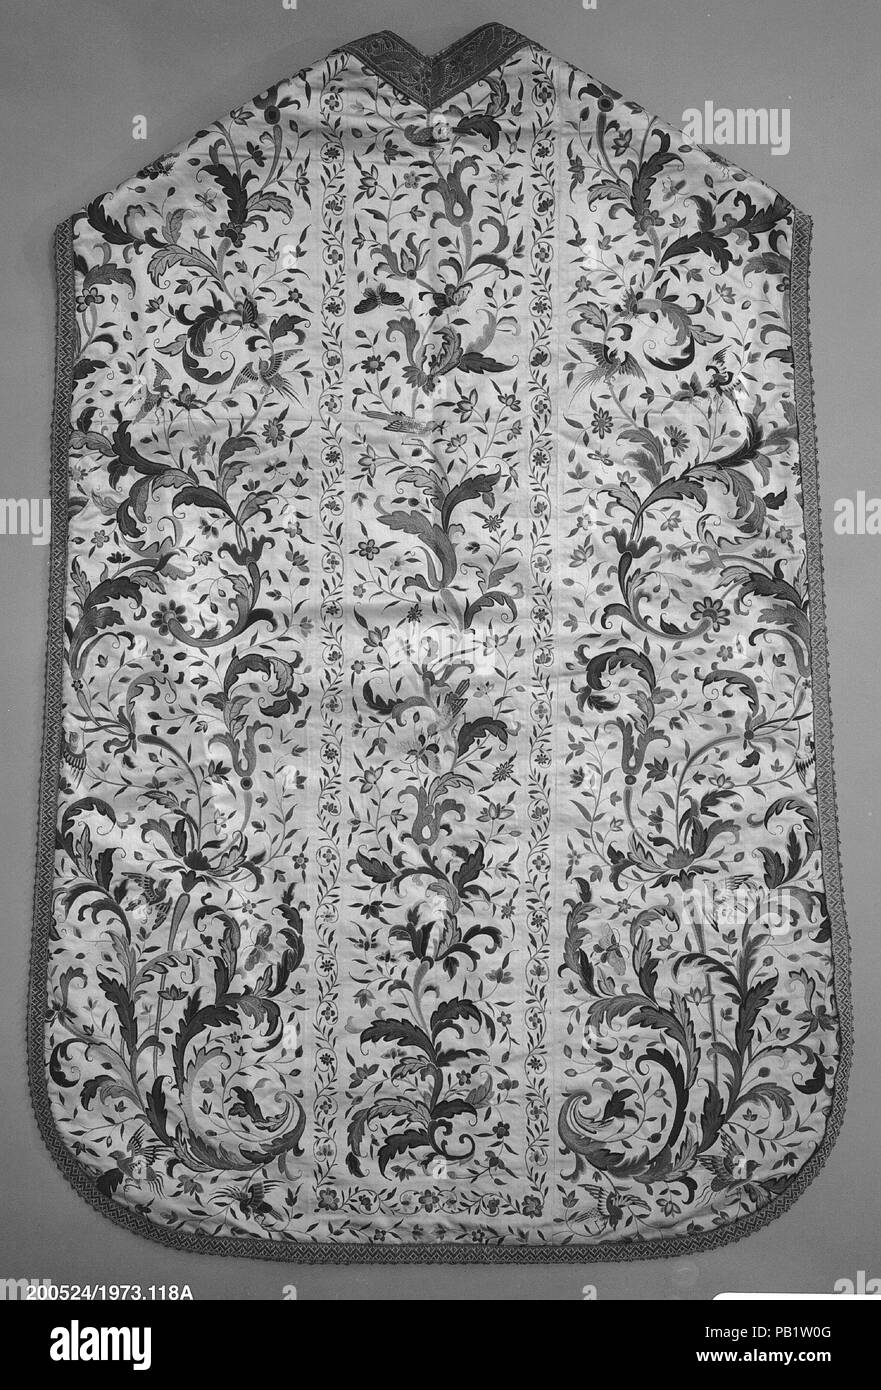 Chasuble. Culture: Chinese, for Eurpoean market. Dimensions: Neck to hem, back: 40 inches; 101.6 cm. Date: late 18th century.  Though Jesuit priests were received at the Chinese court with great appreciation of their learning and courtesy, a misunderstanding occurred between the Pope and Emperor K'ang-his toward the end of the latter's life. By the second half of the eighteenth century, Christian services were forbidden in China and vestments such as these were made only for a market outside China. Museum: Metropolitan Museum of Art, New York, USA. - Stock Image